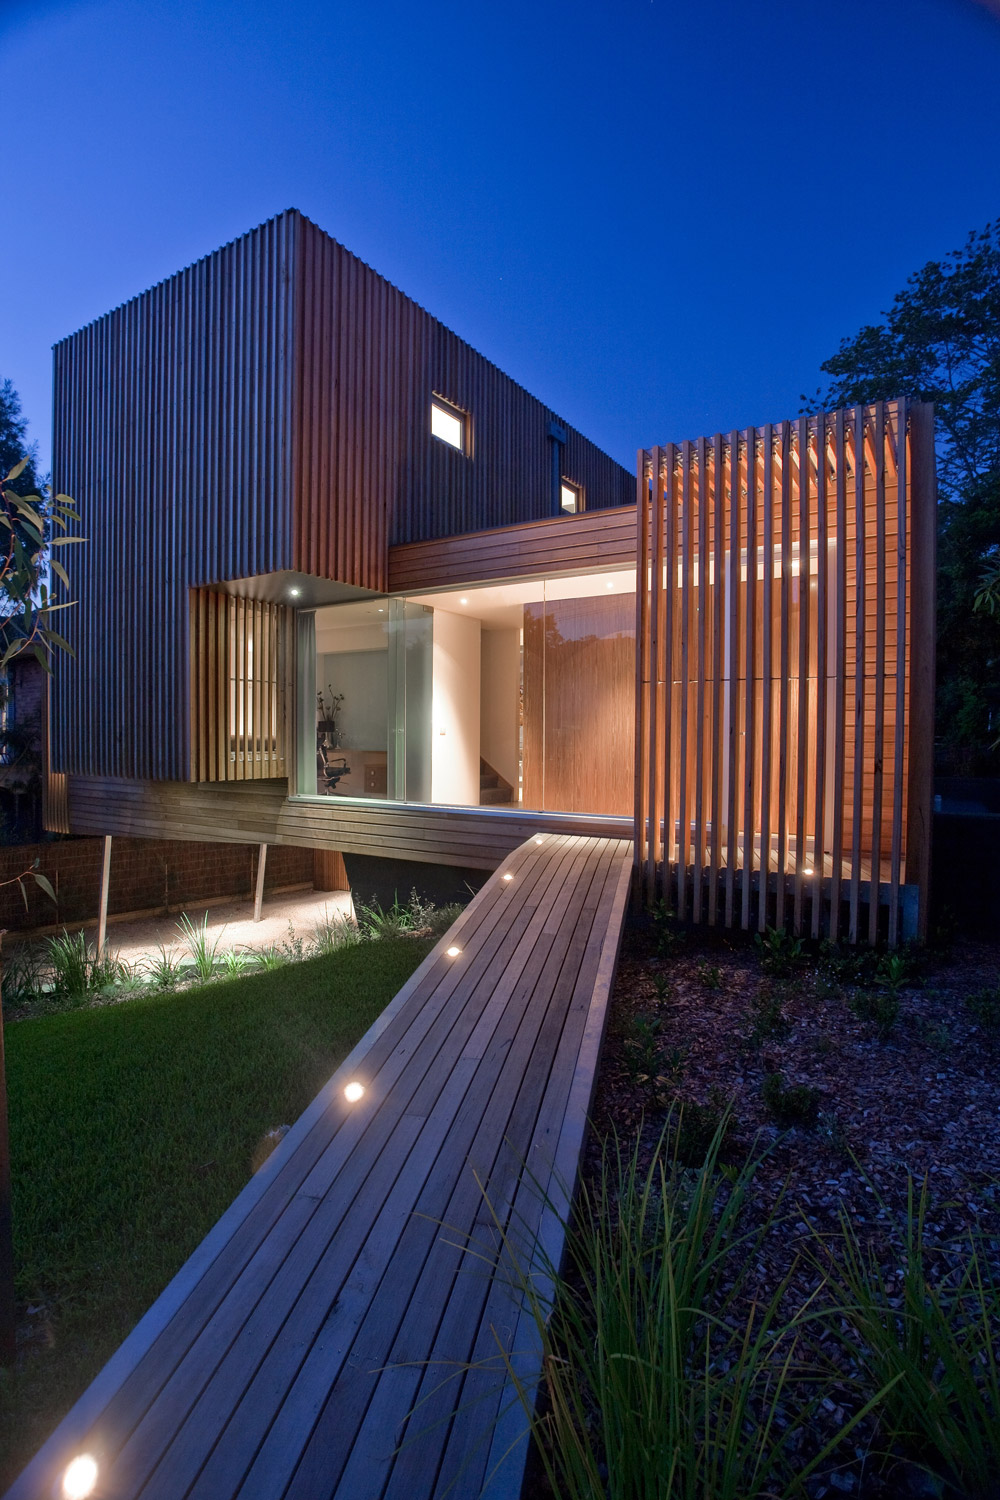 Kew house 3 vibe design group legnoarchitettura - Pilastri portanti incassati in una parete ...